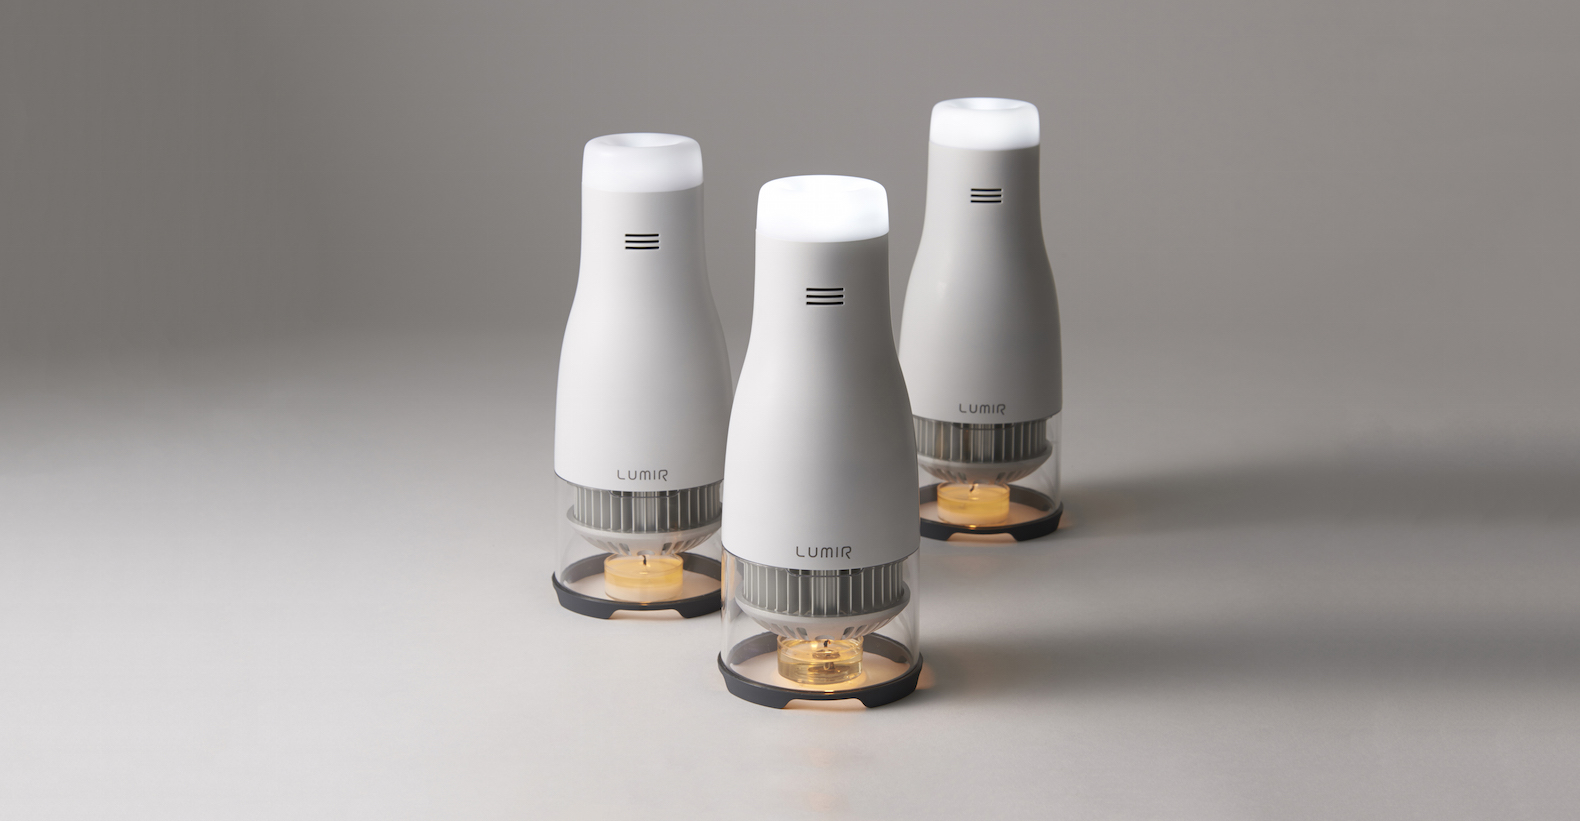 eco friendly lighting. Battery-free Lumir C Is An LED Lamp Powered Solely By Candle Flame Eco Friendly Lighting B